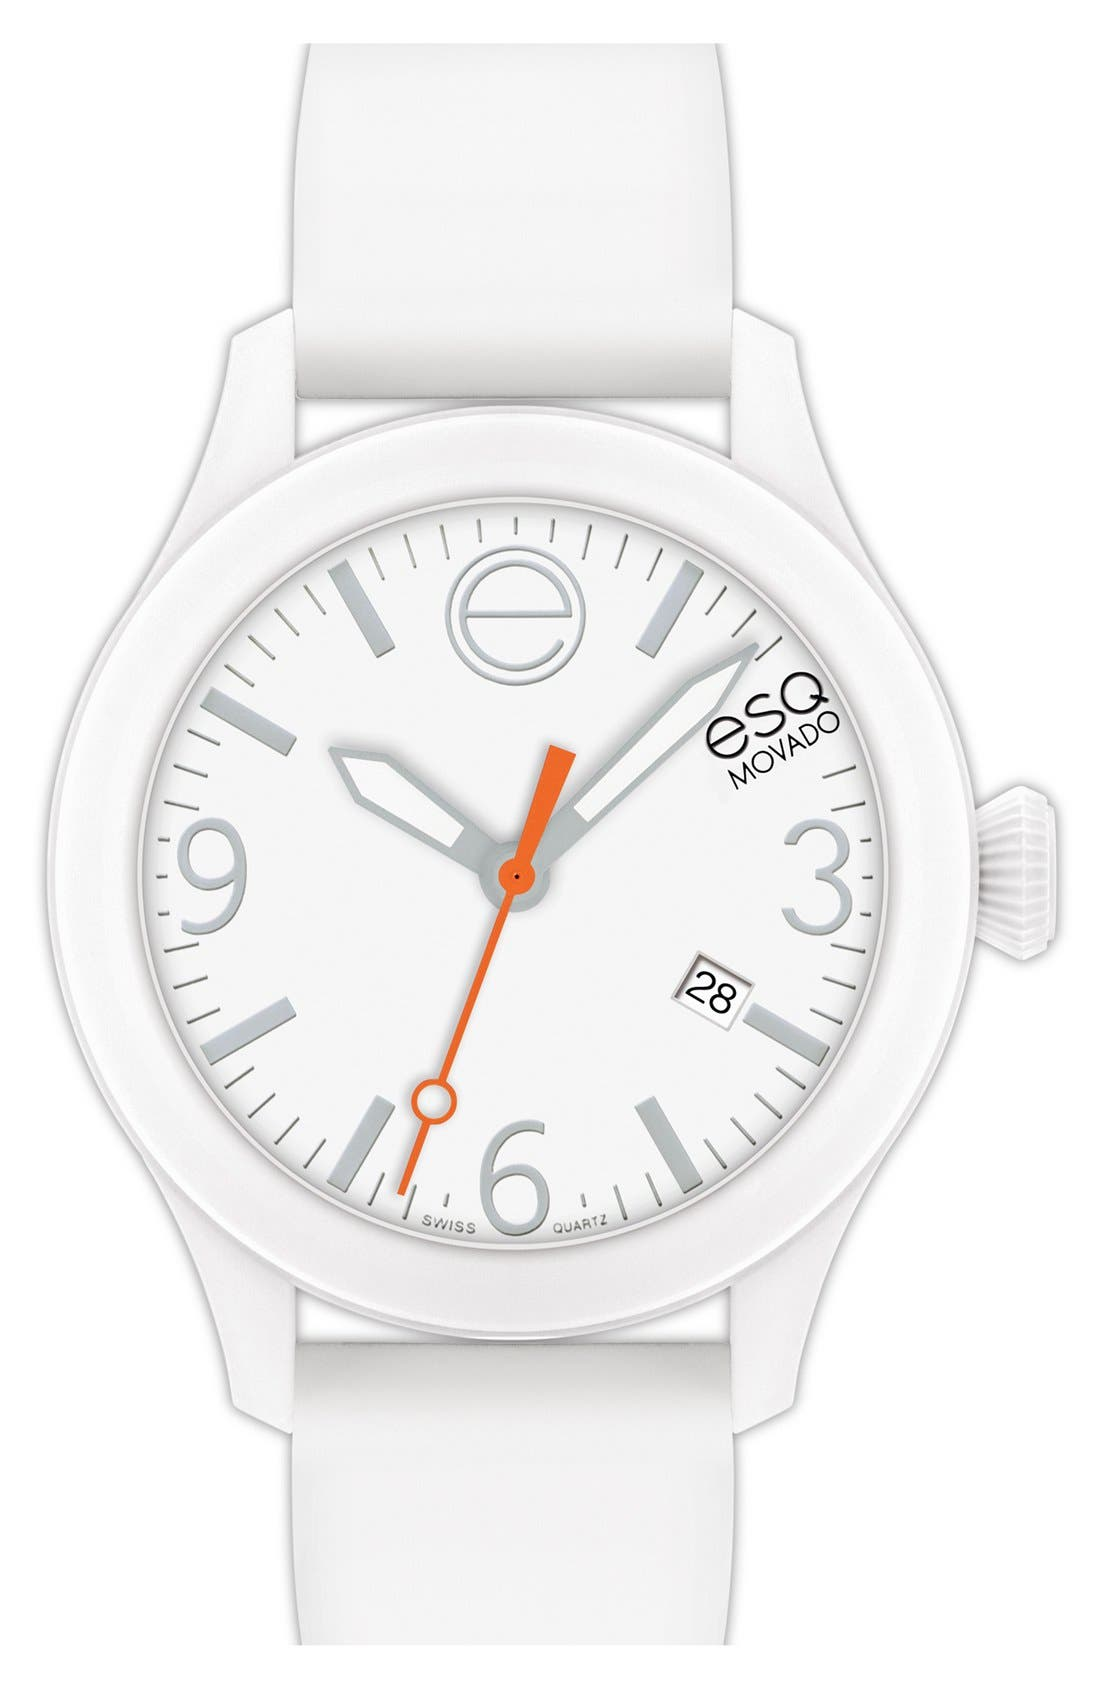 Alternate Image 1 Selected - ESQ Movado 'One' Silicone Strap Watch, 42mm